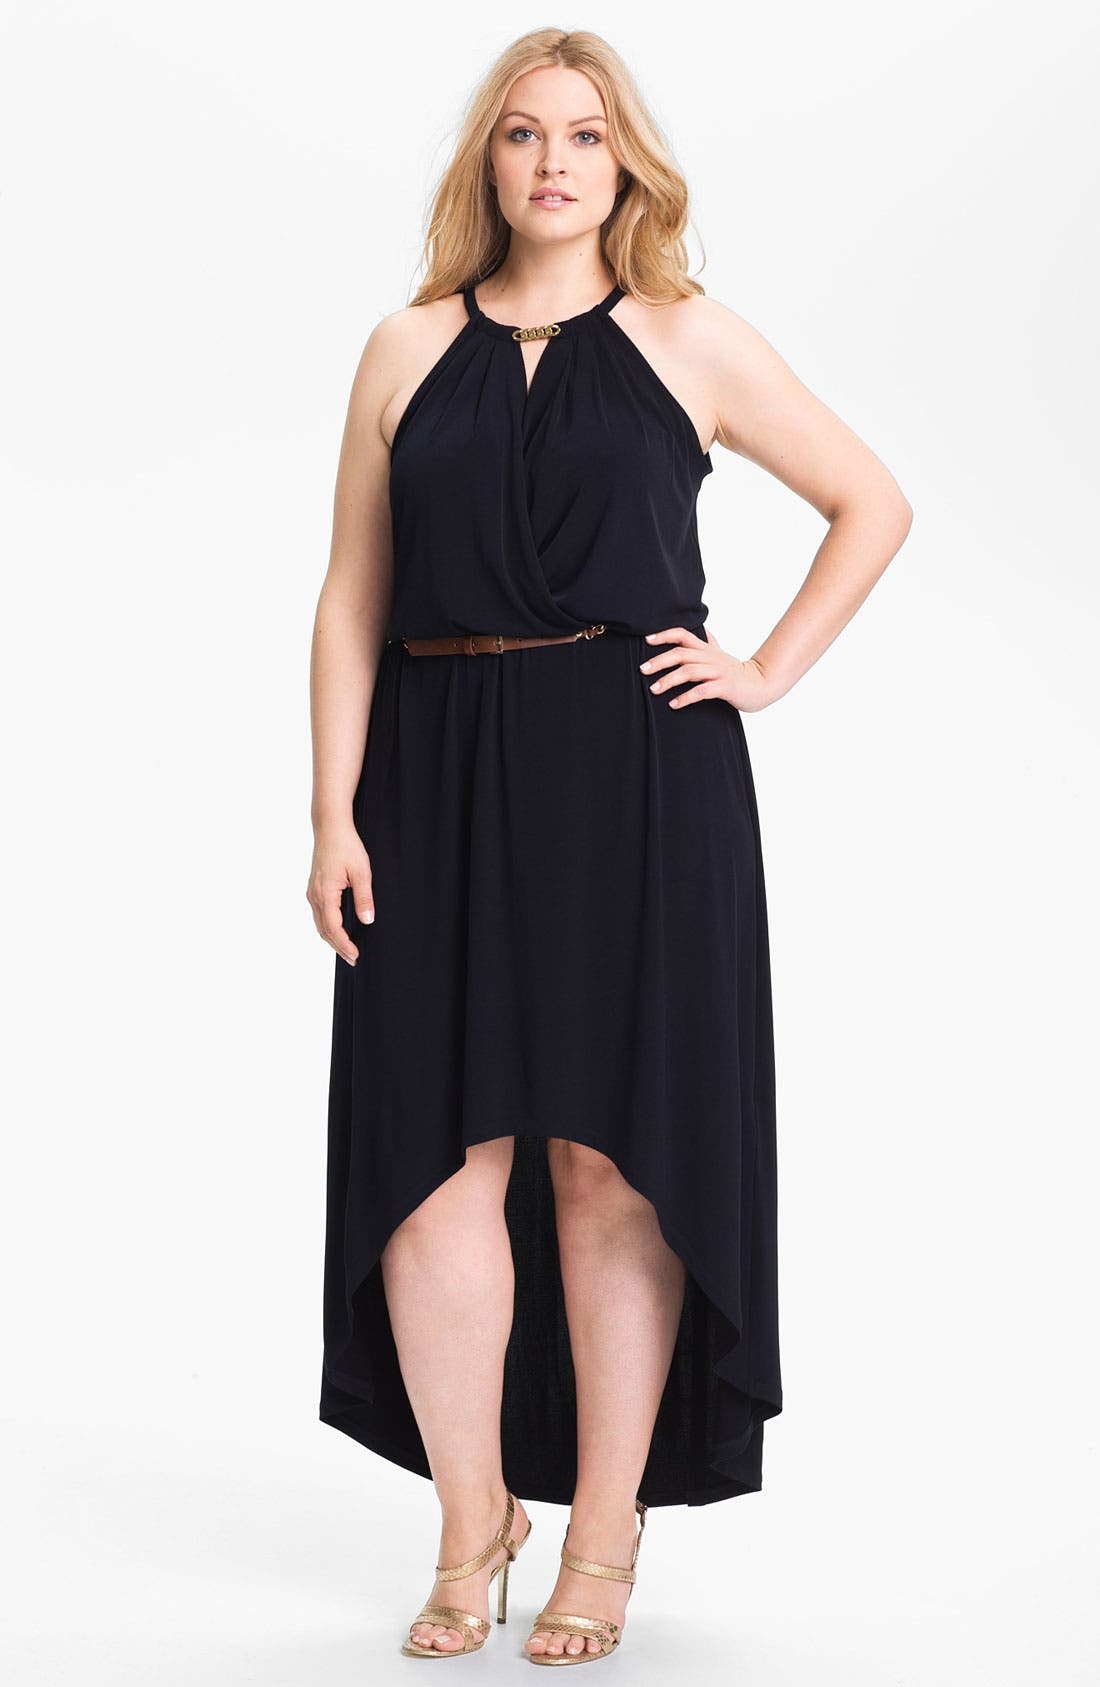 Alternate Image 1 Selected - MICHAEL Michael Kors Draped High/Low Jersey Dress (Plus Size) (Online Exclusive)